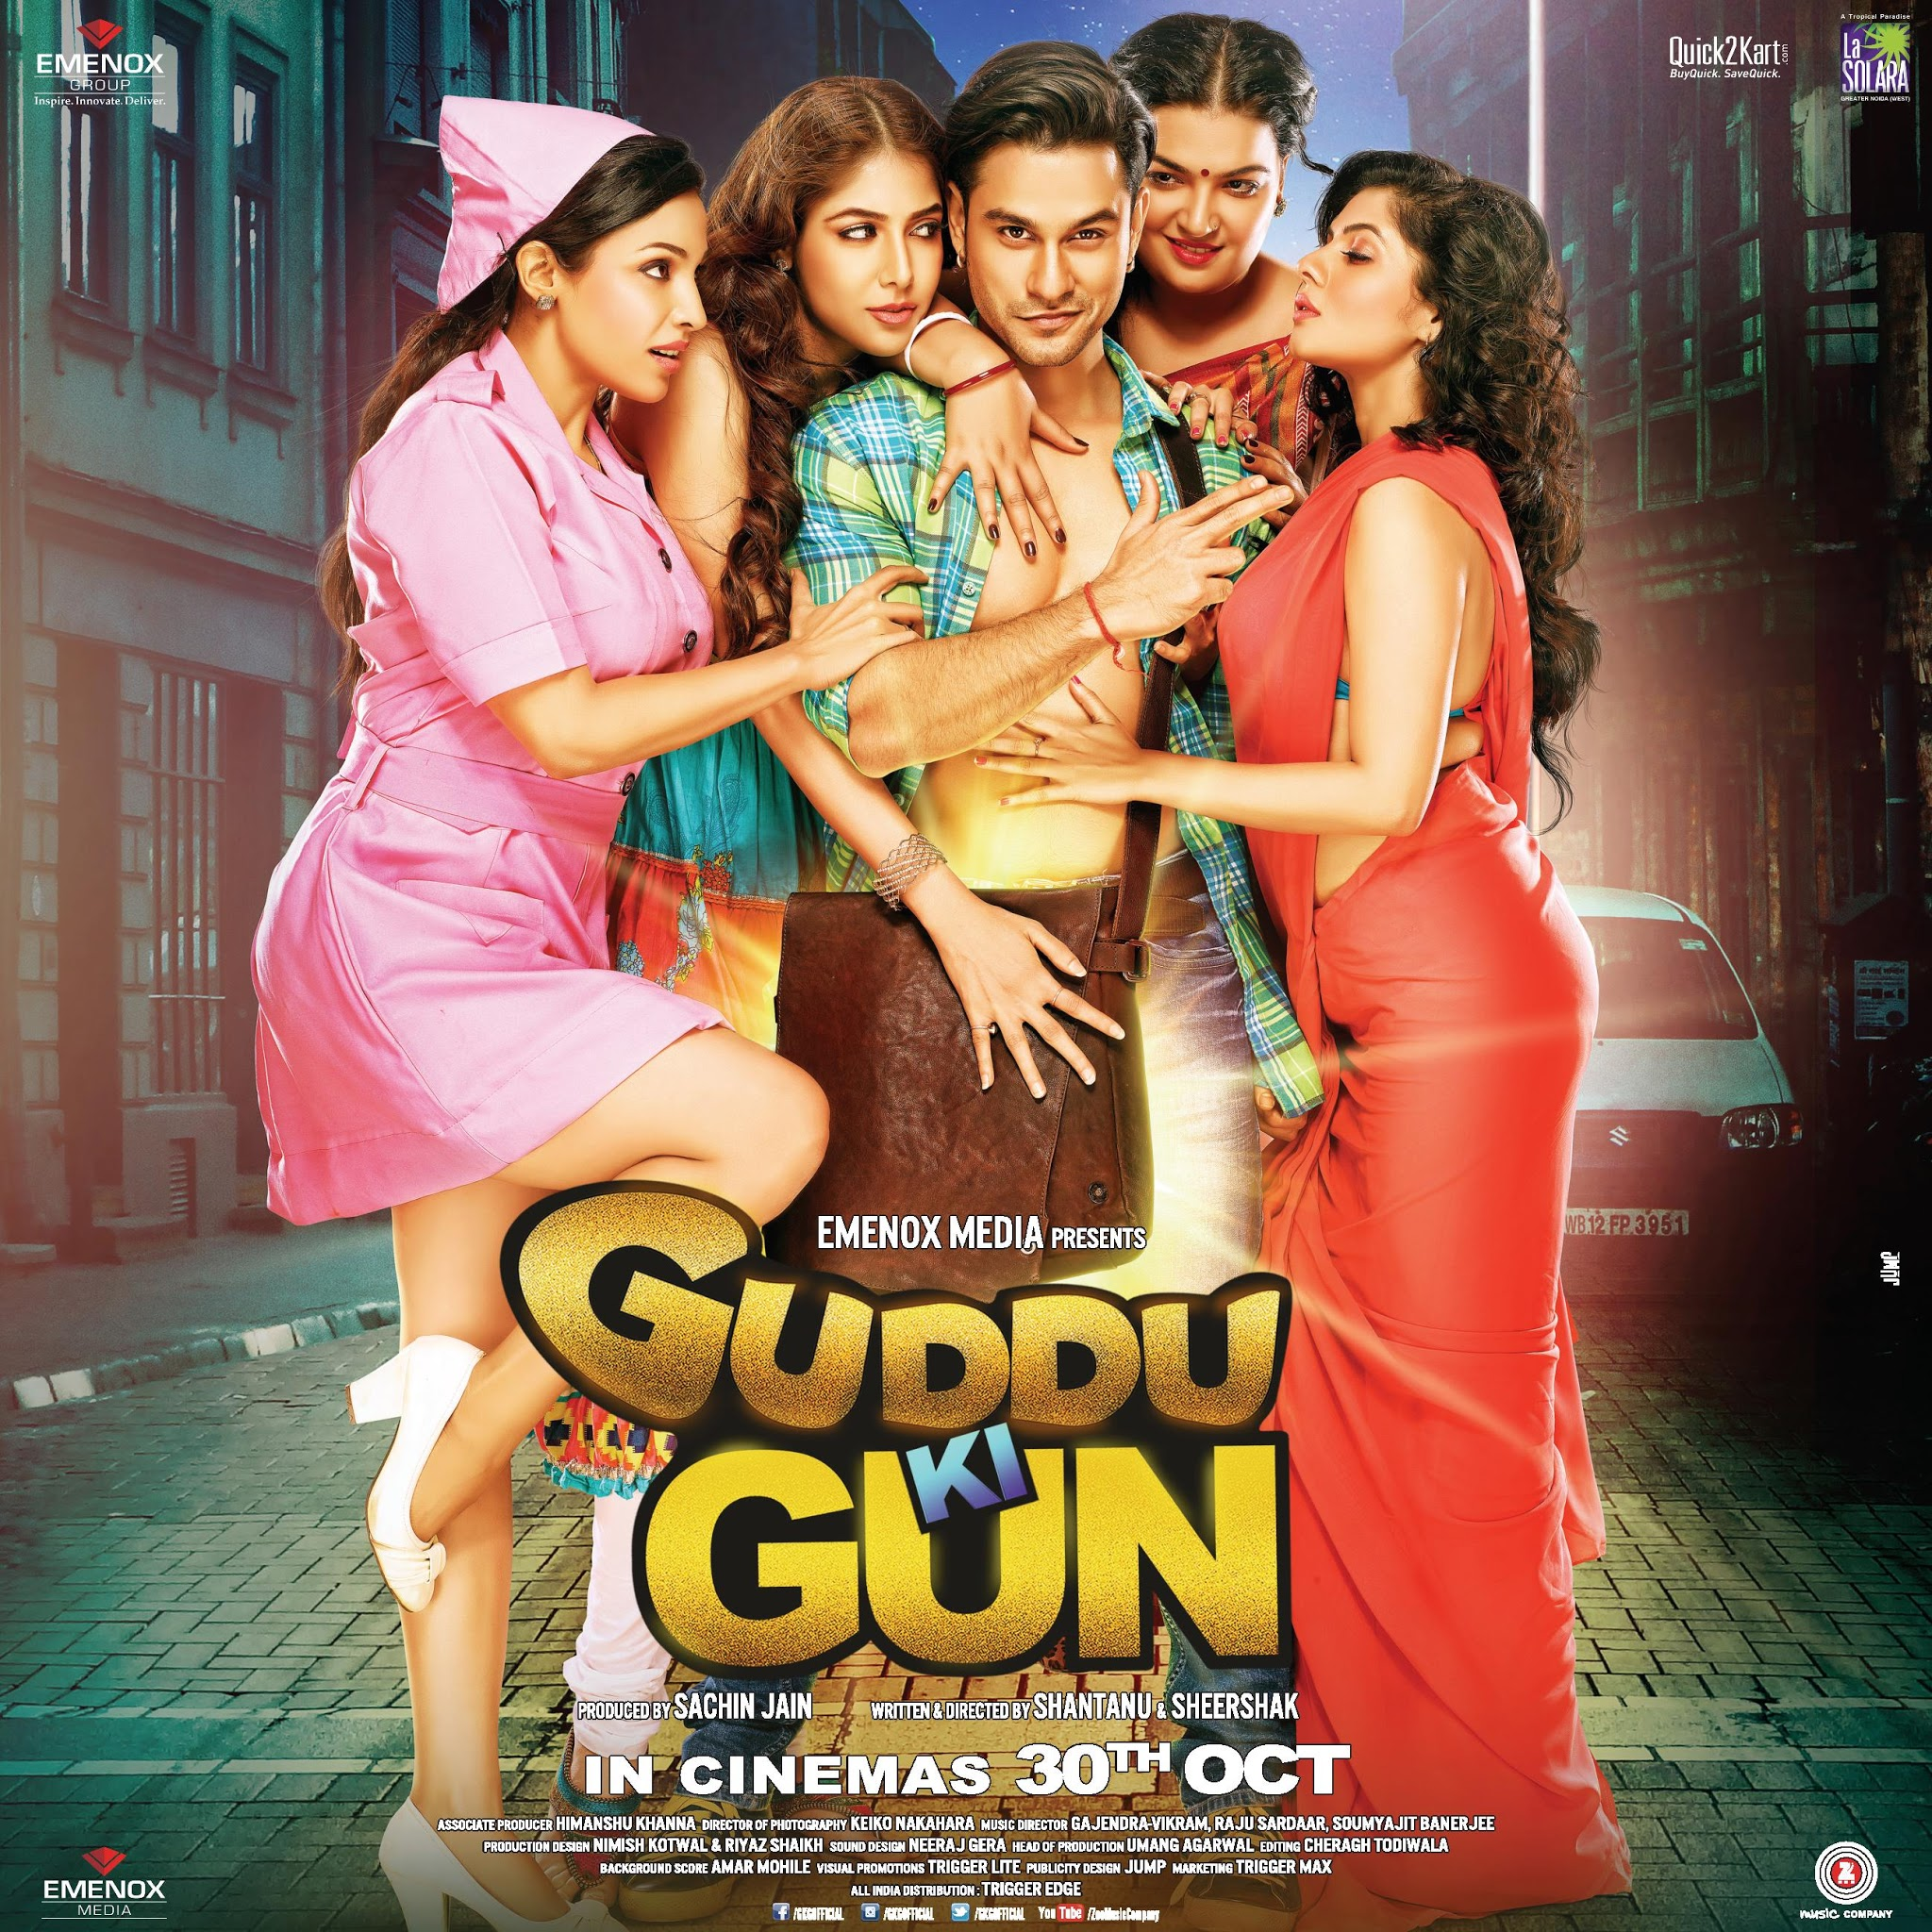 Guddu Ki Gun (2015) Hindi 480p WEB-DL x264 AAC 400MB ESub